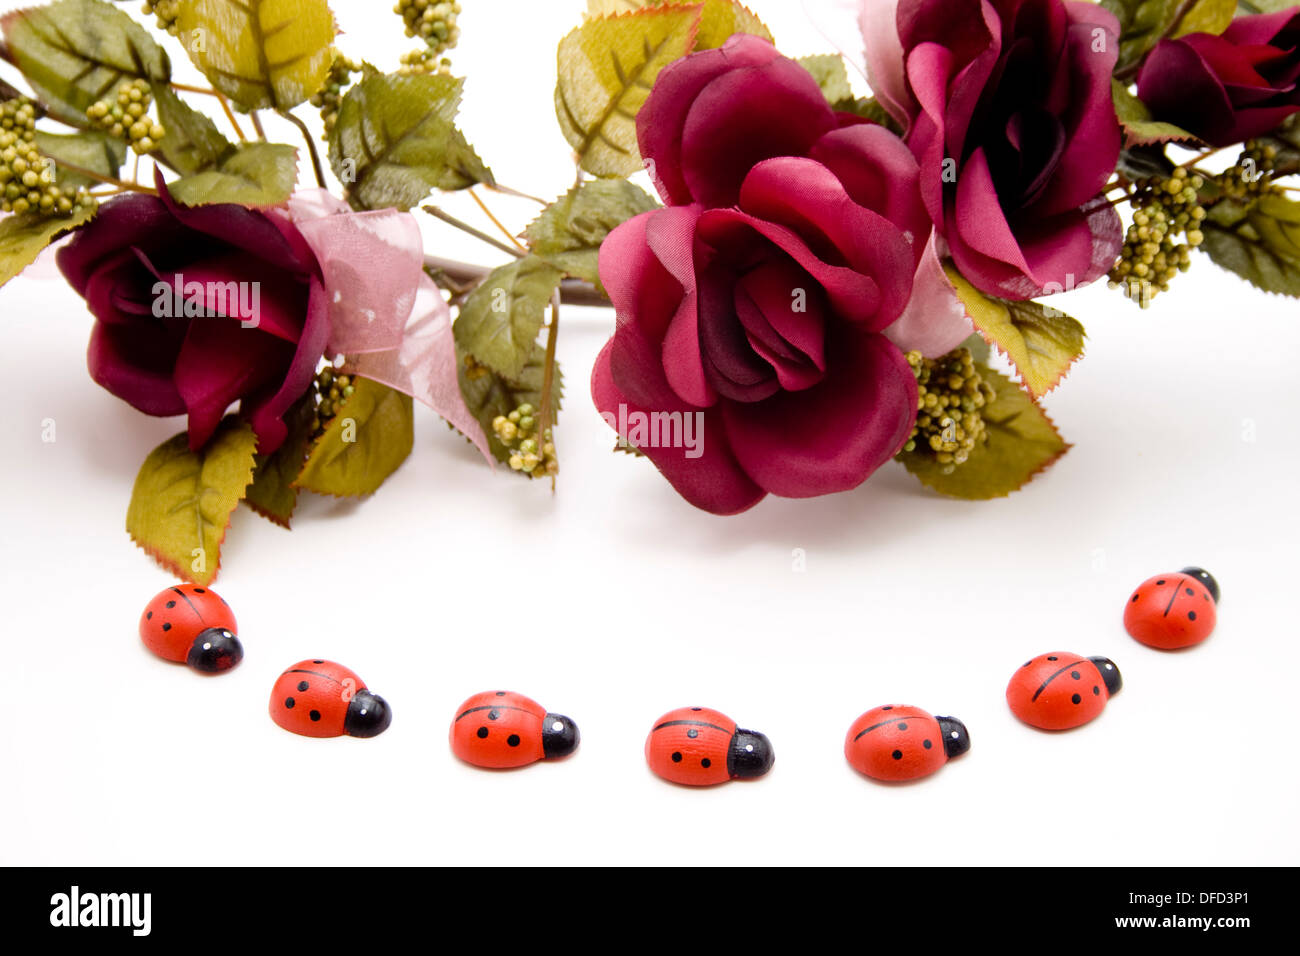 Rose branch with wooden beetle - Stock Image